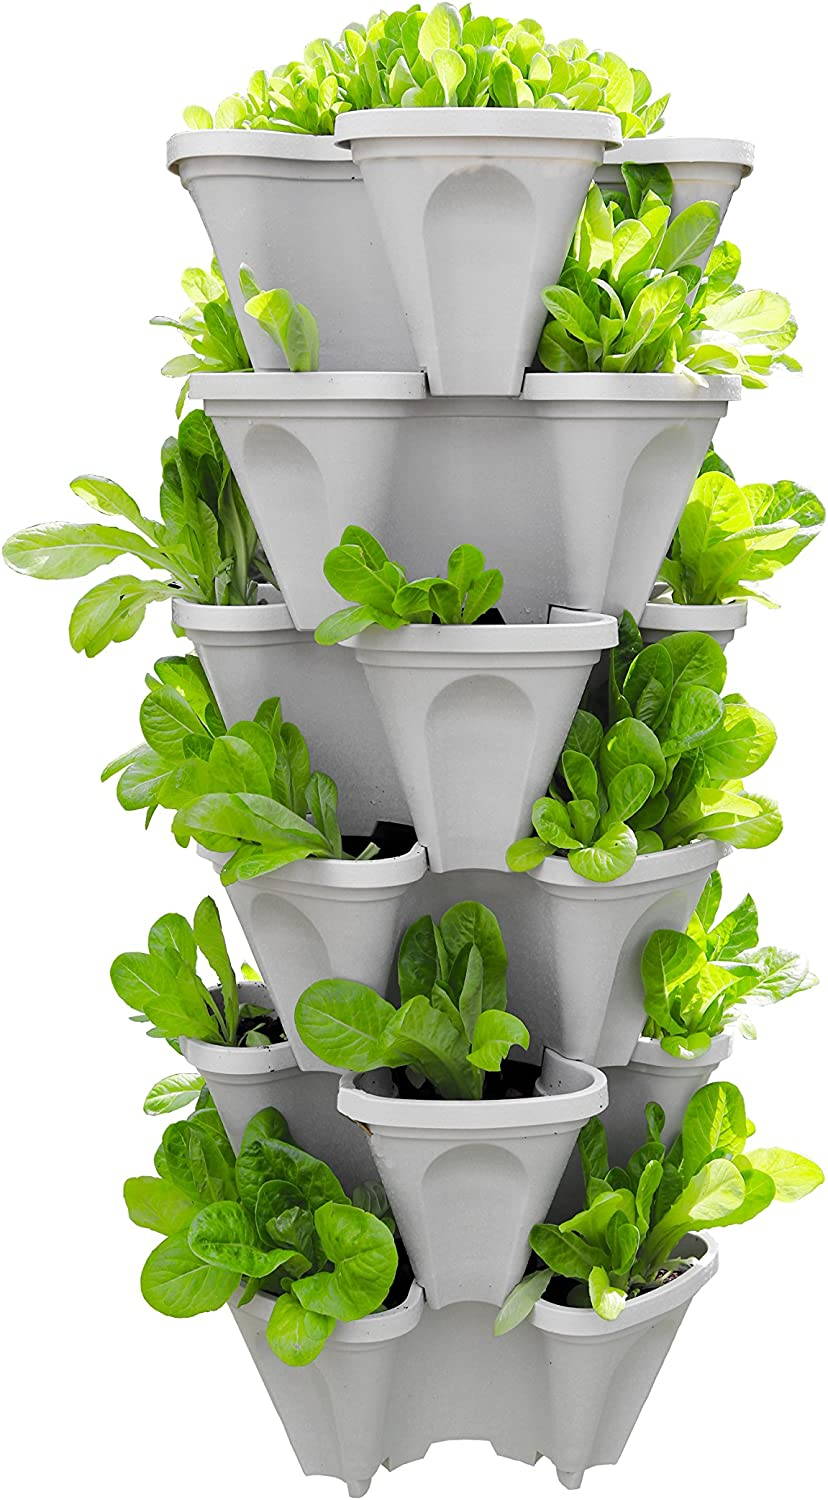 gardening hack: grow vertically to save space!